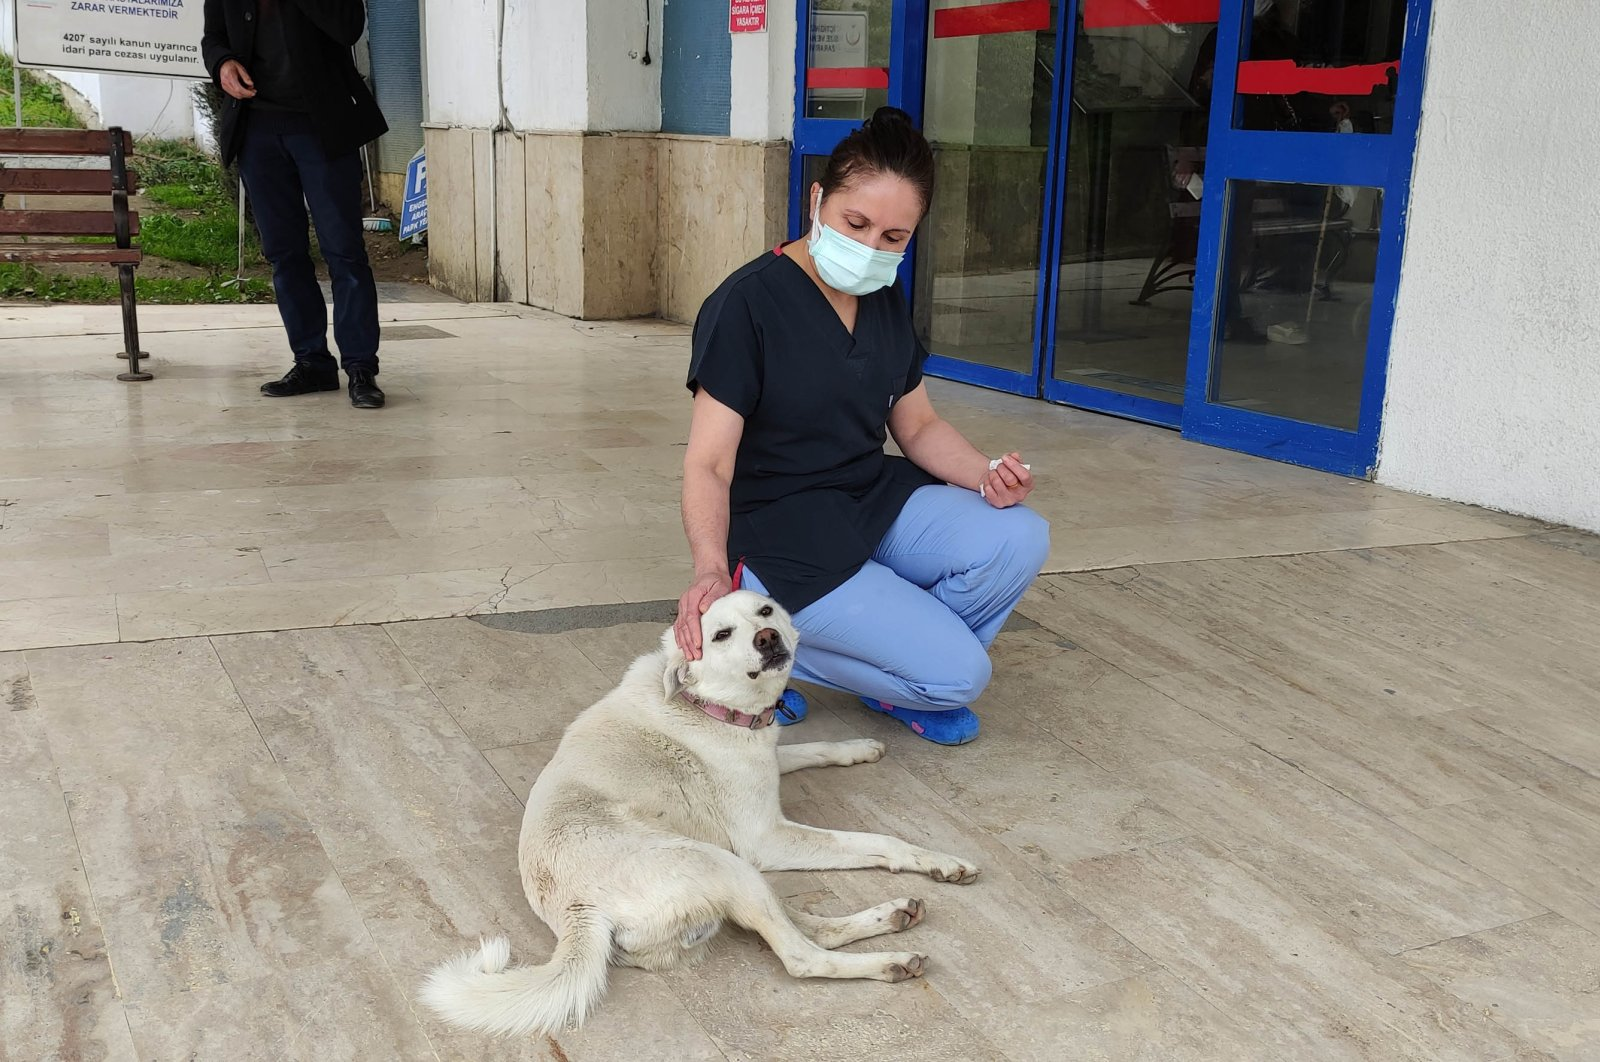 A hospital worker pets Pamuk, who is waiting at the entrance of a hospital for her owner to be discharged, in Ordu, northern Turkey, March 28, 2021. (DHA PHOTO)